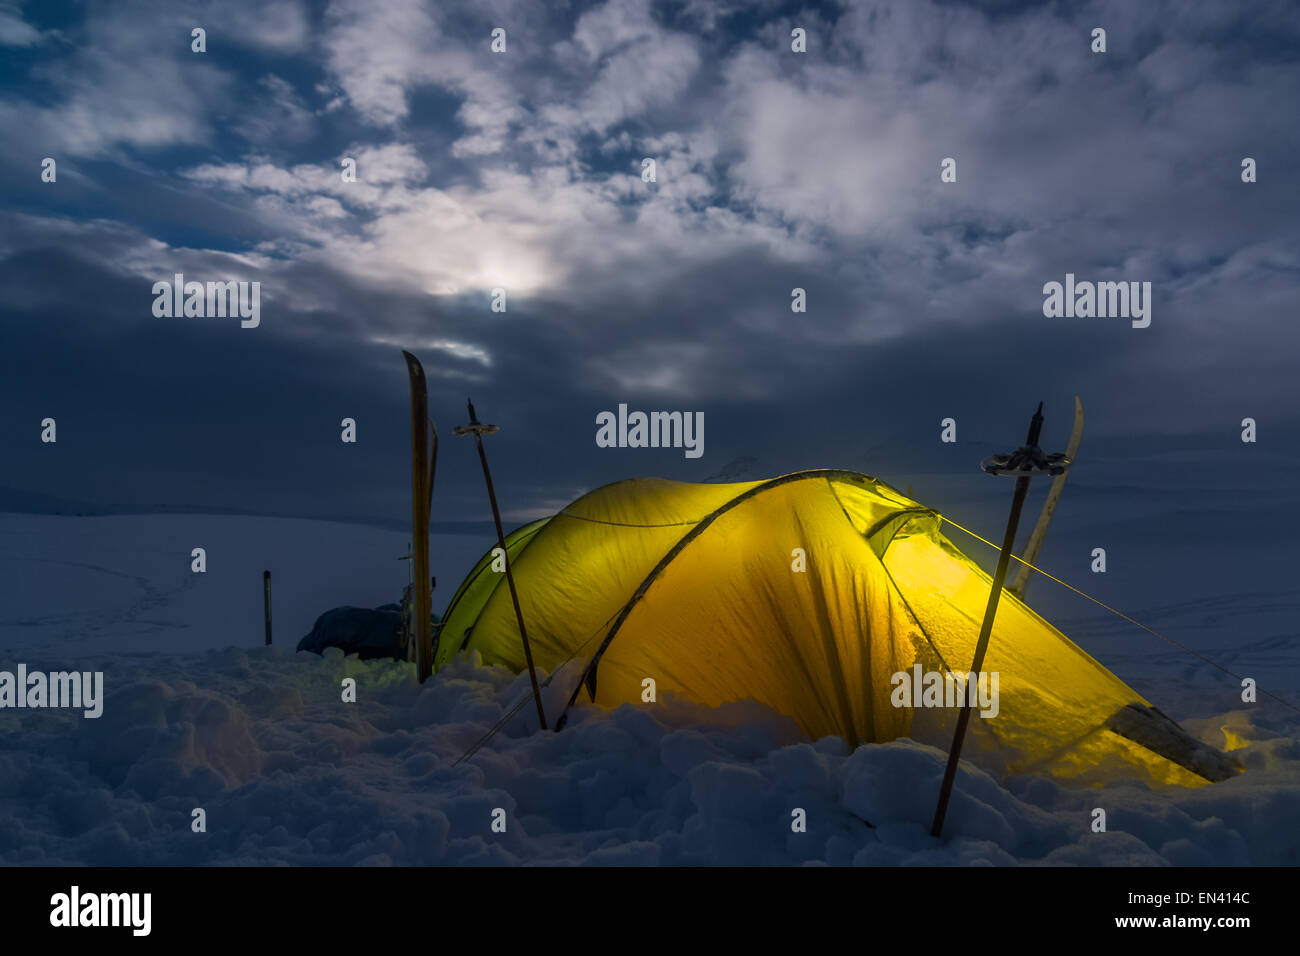 Out in the Northern Wilderness - Stock Image